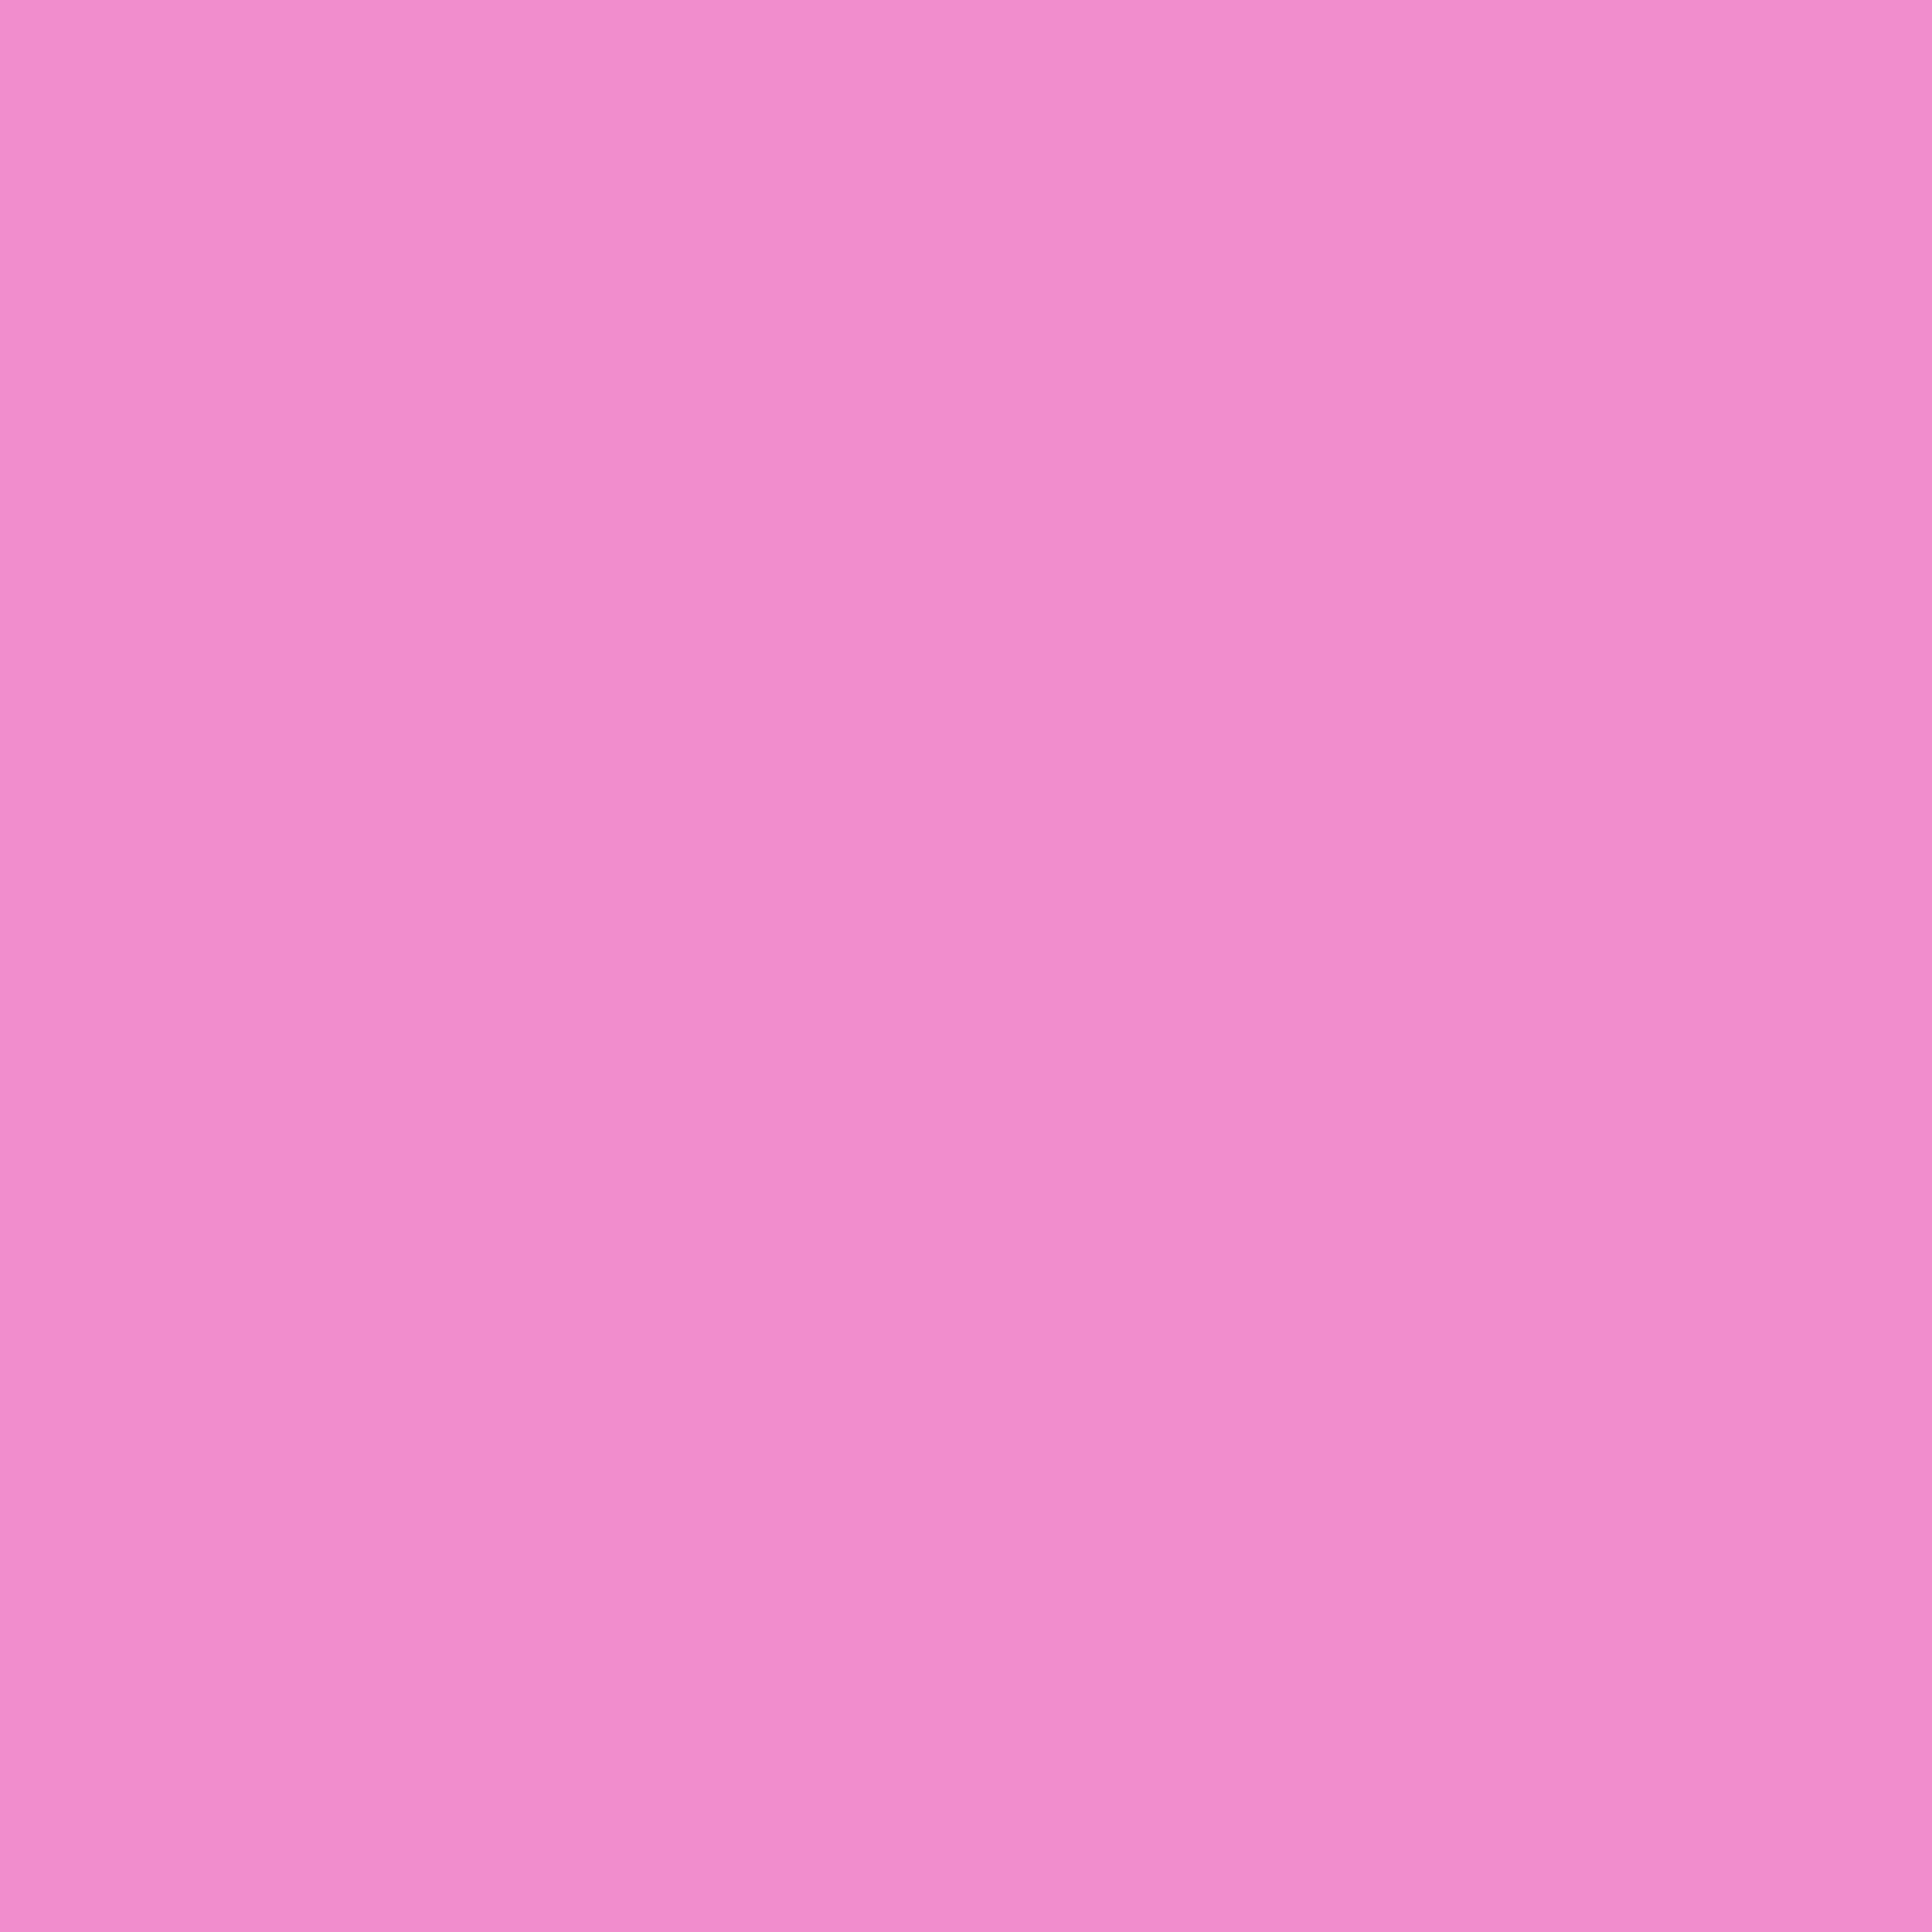 2732x2732 Orchid Pink Solid Color Background